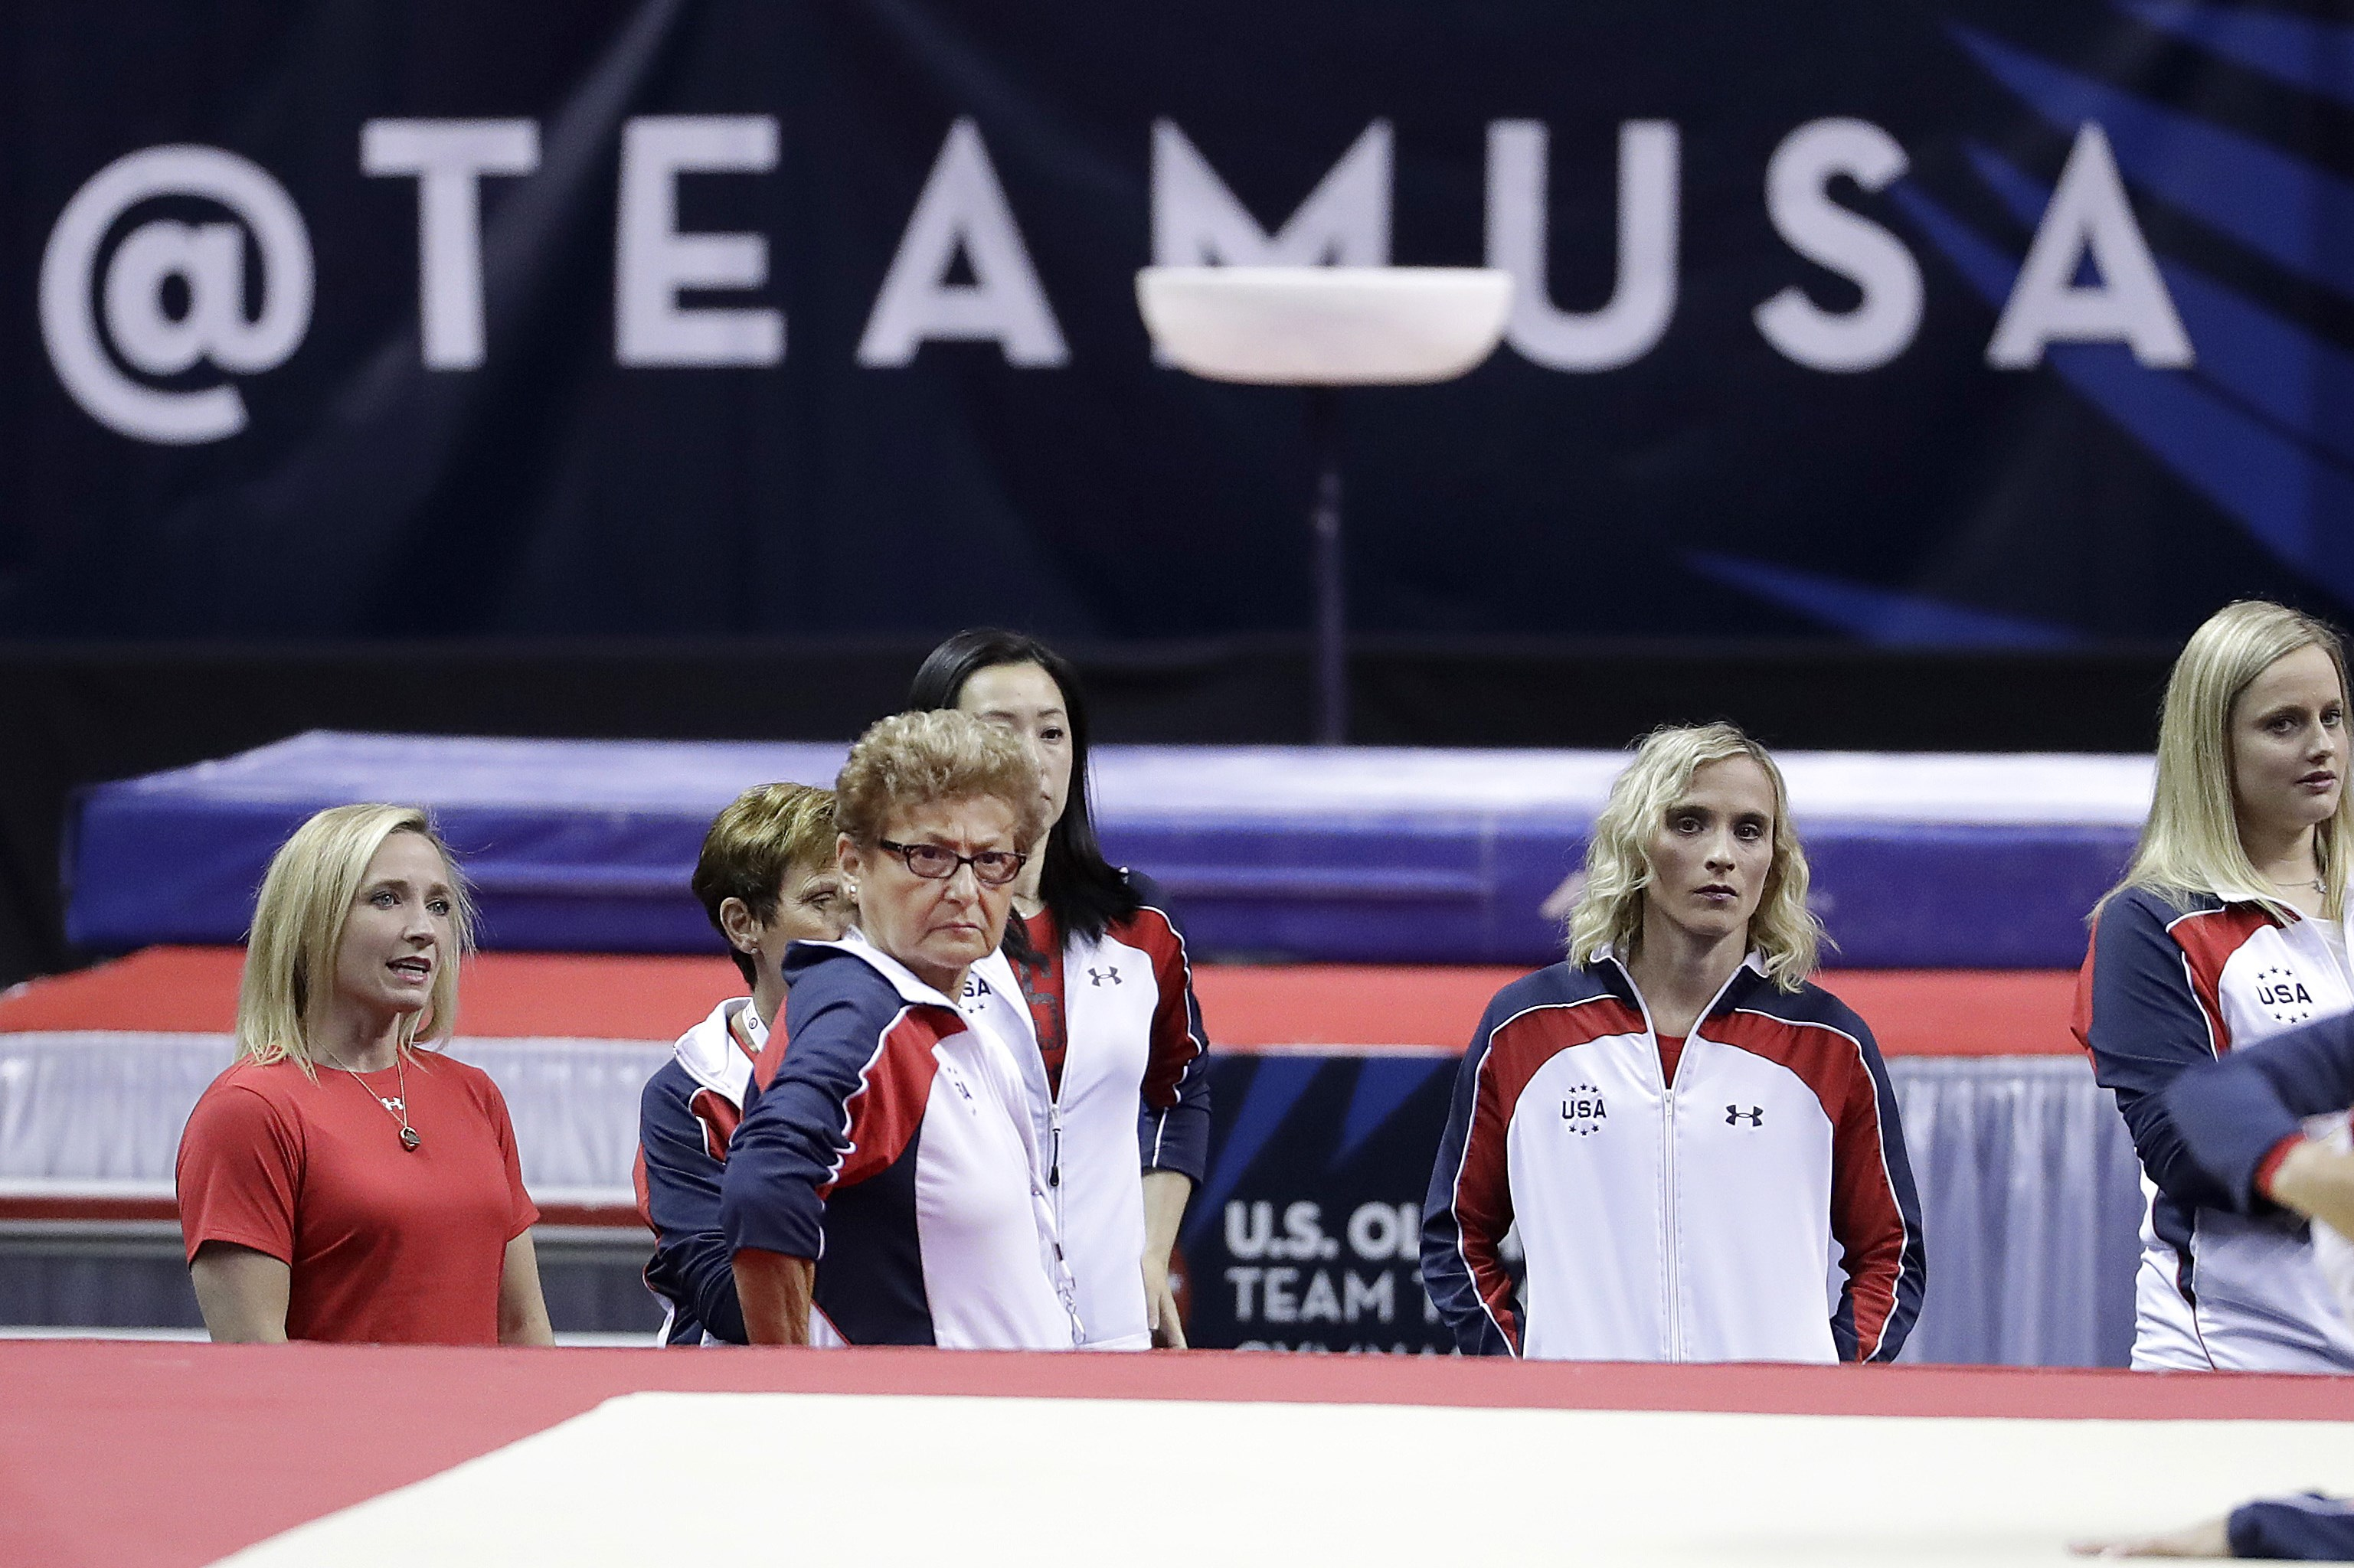 Marta Karolyi, national team coordinator for USA Gymnastics, center left, watches as competitors warm up before the women's U.S. Olympic gymnastics trials in San Jose, Calif., Sunday, July 10, 2016. (AP Photo/Gregory Bull)